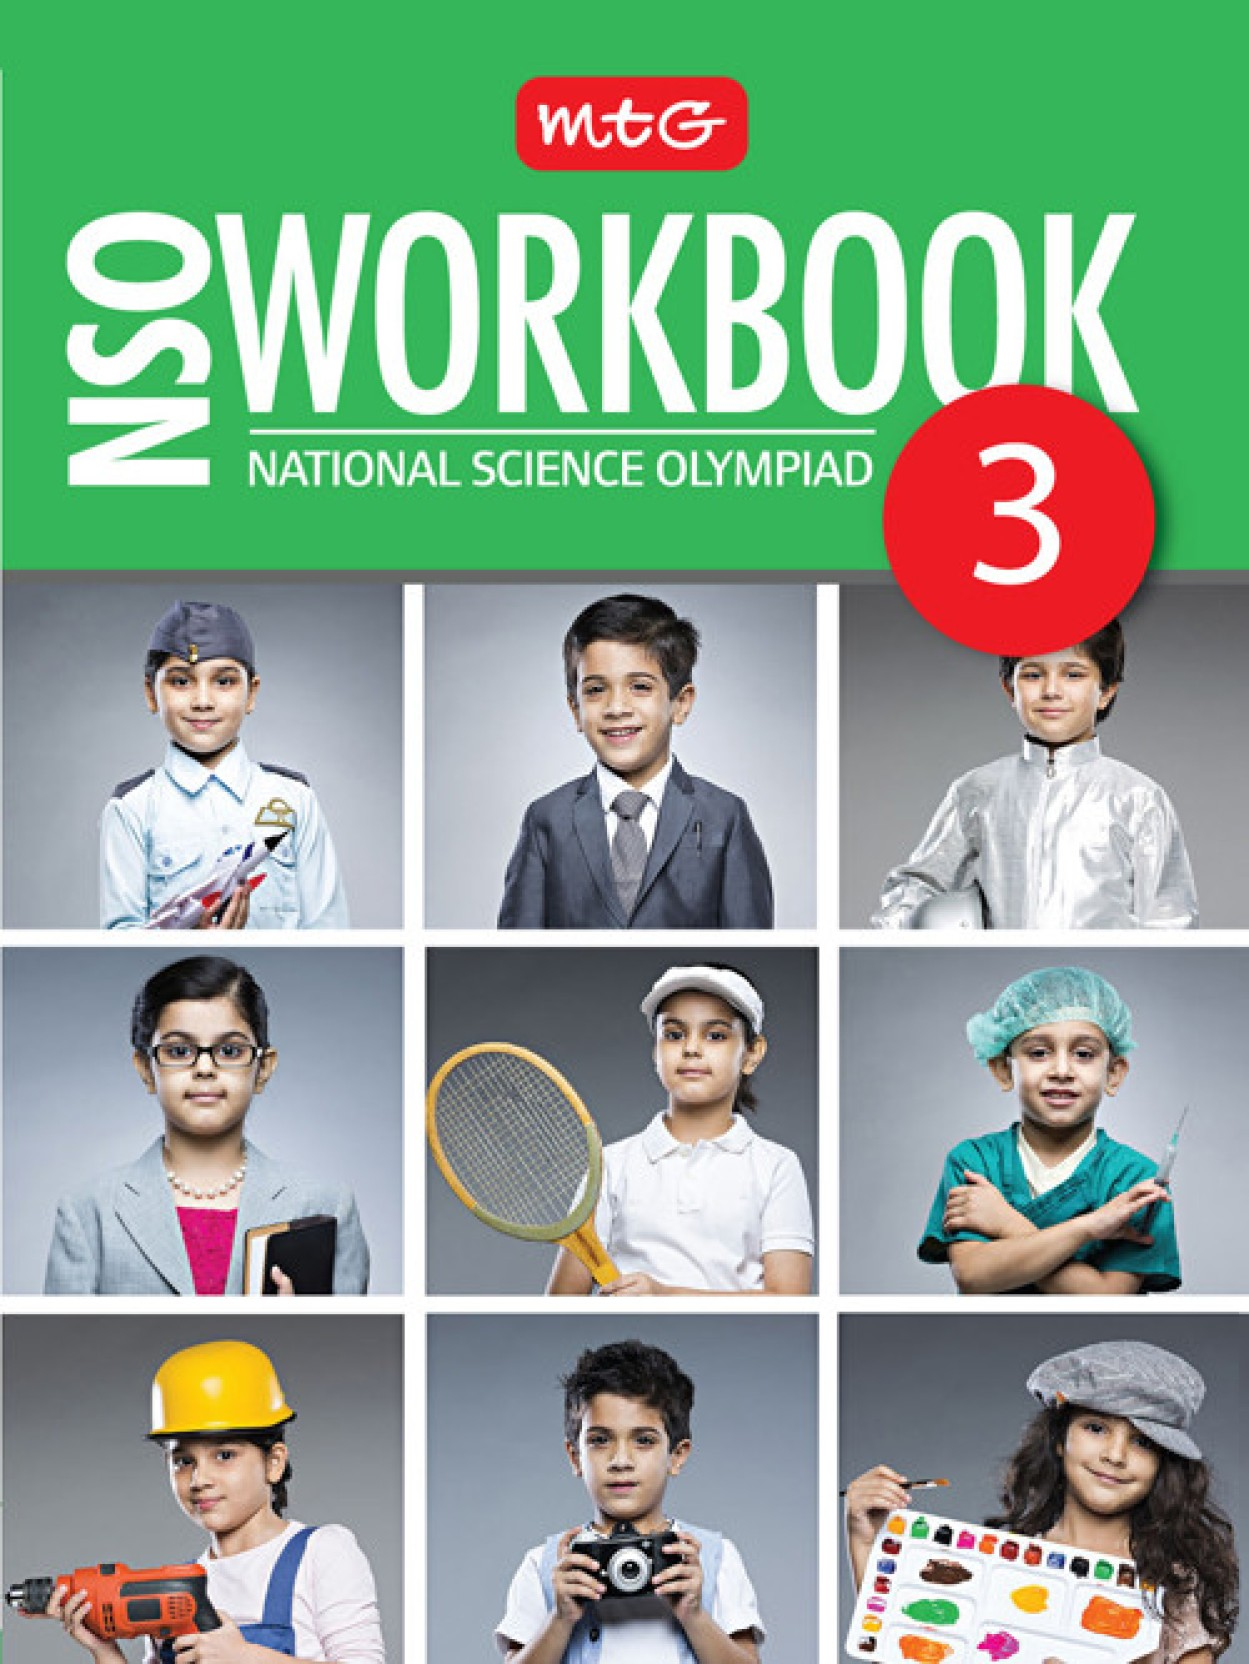 National Science Olympiad Work Book - Class 3